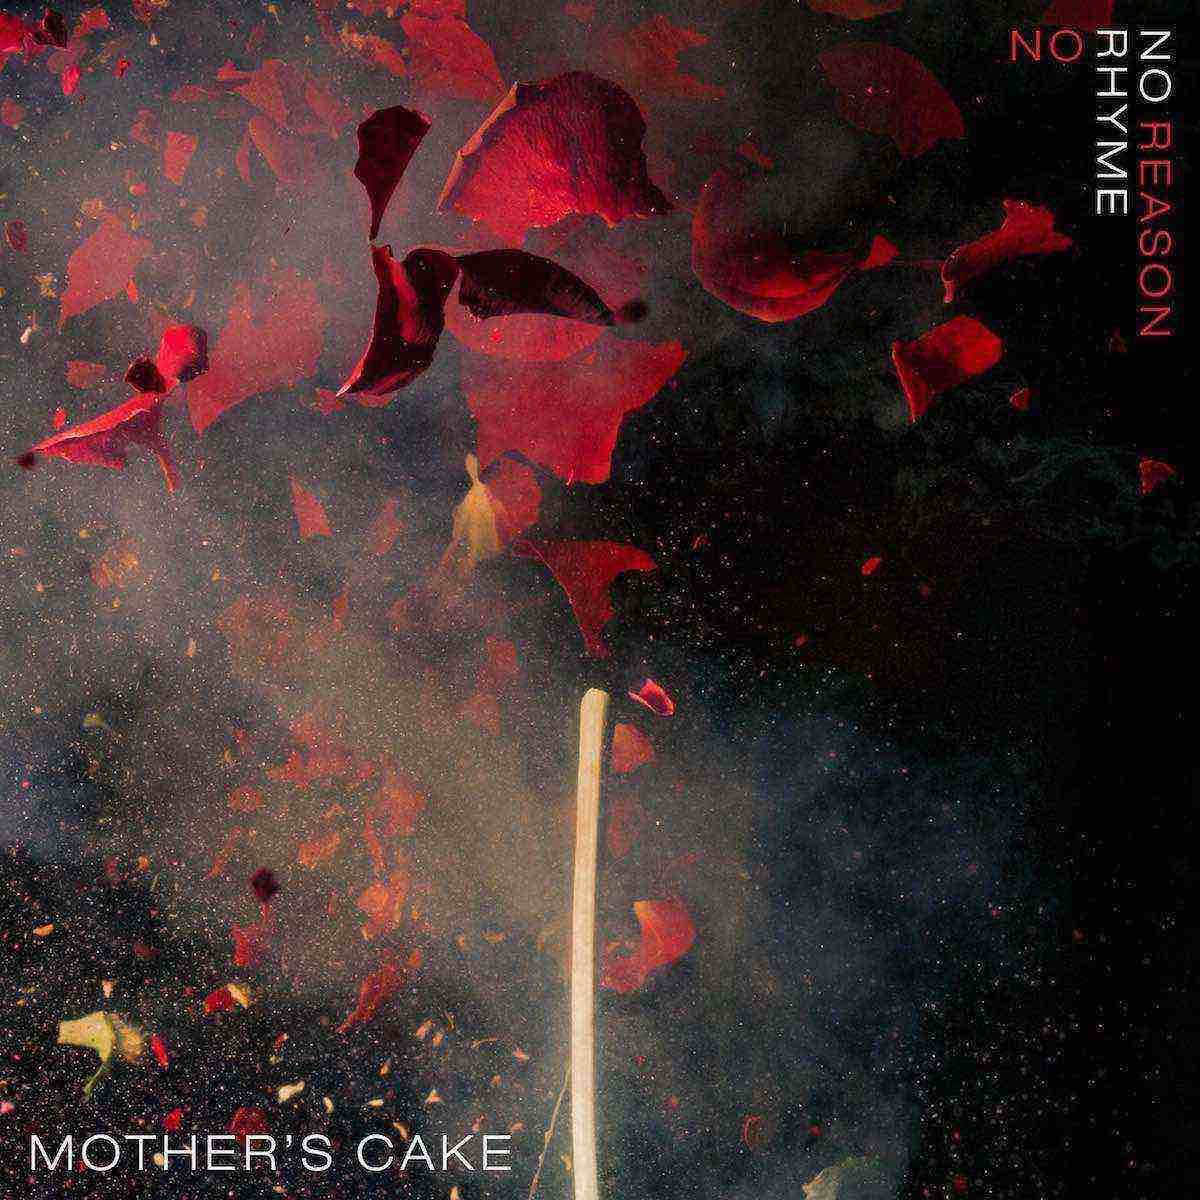 Mother's Cake: No Rhyme No Reason Book Cover